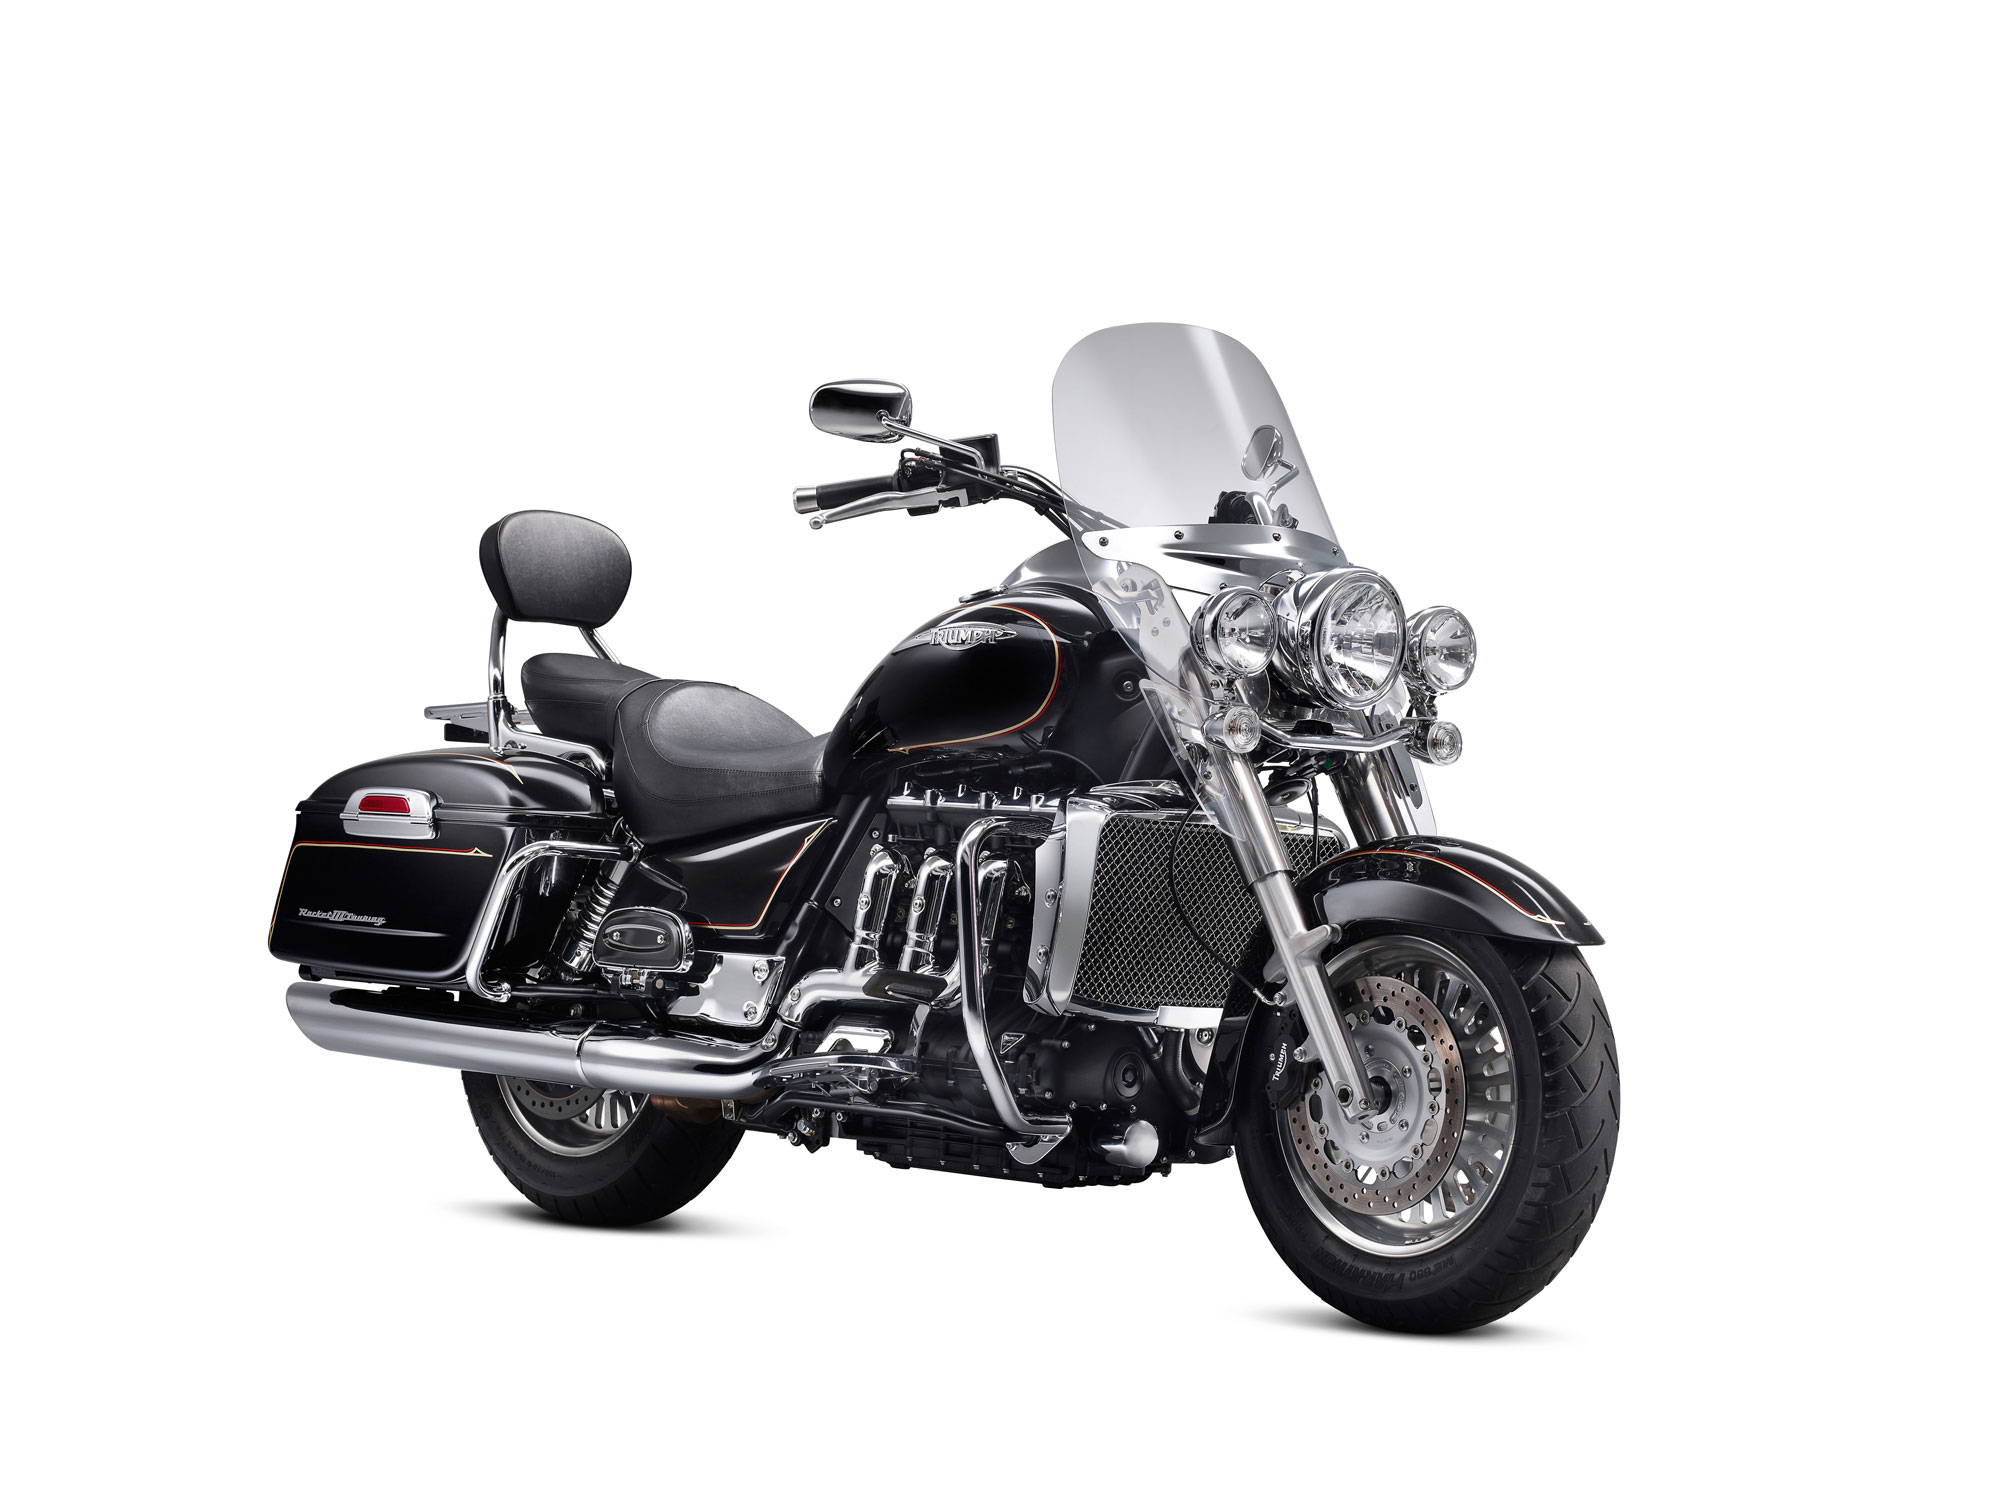 Triumph Rocket III Touring 2010 images #126287